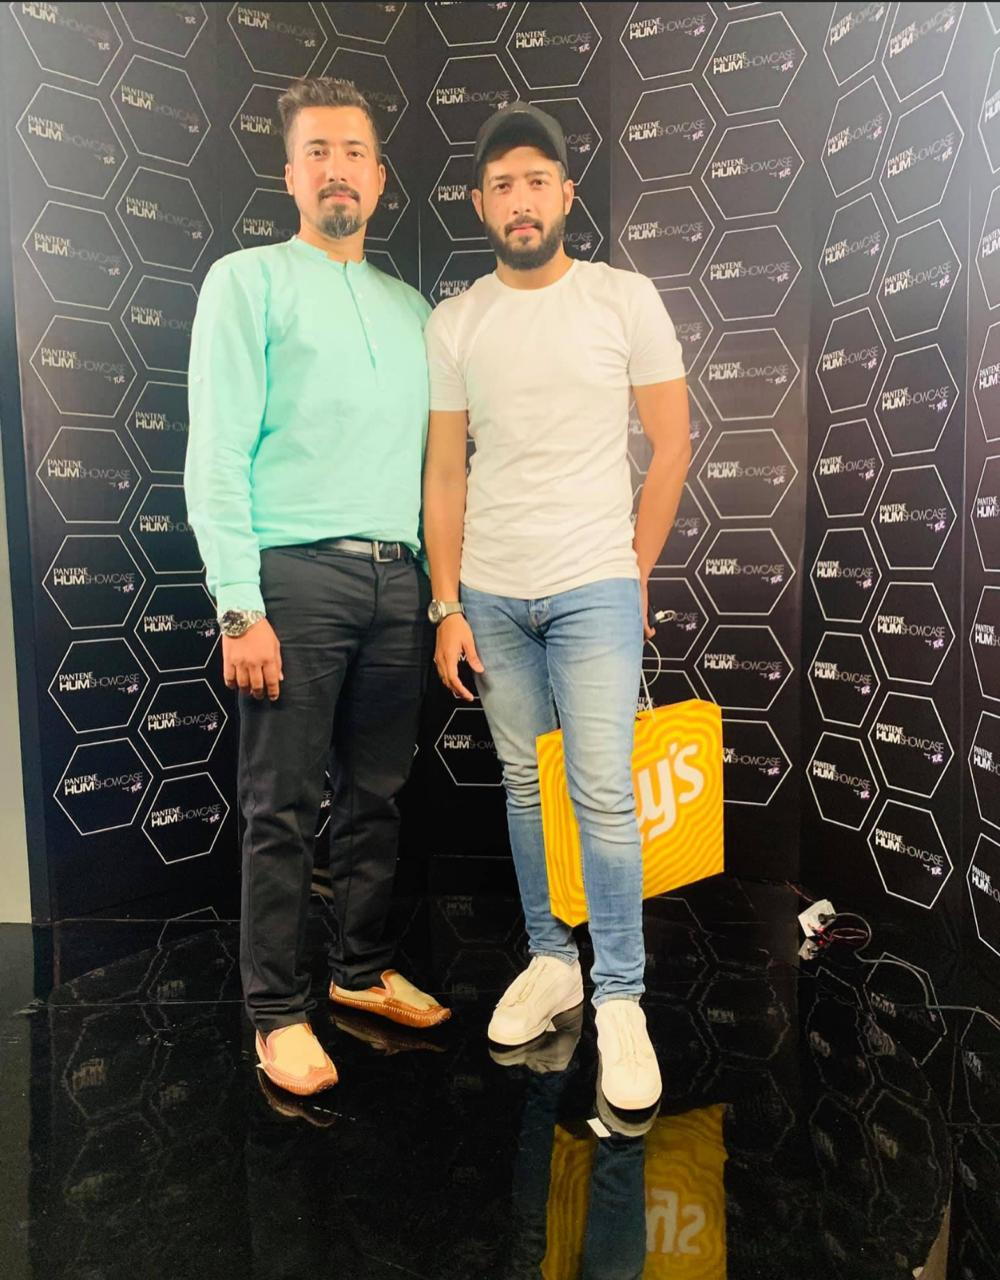 Noman and Bhaiya is set to take over the bridal wear market